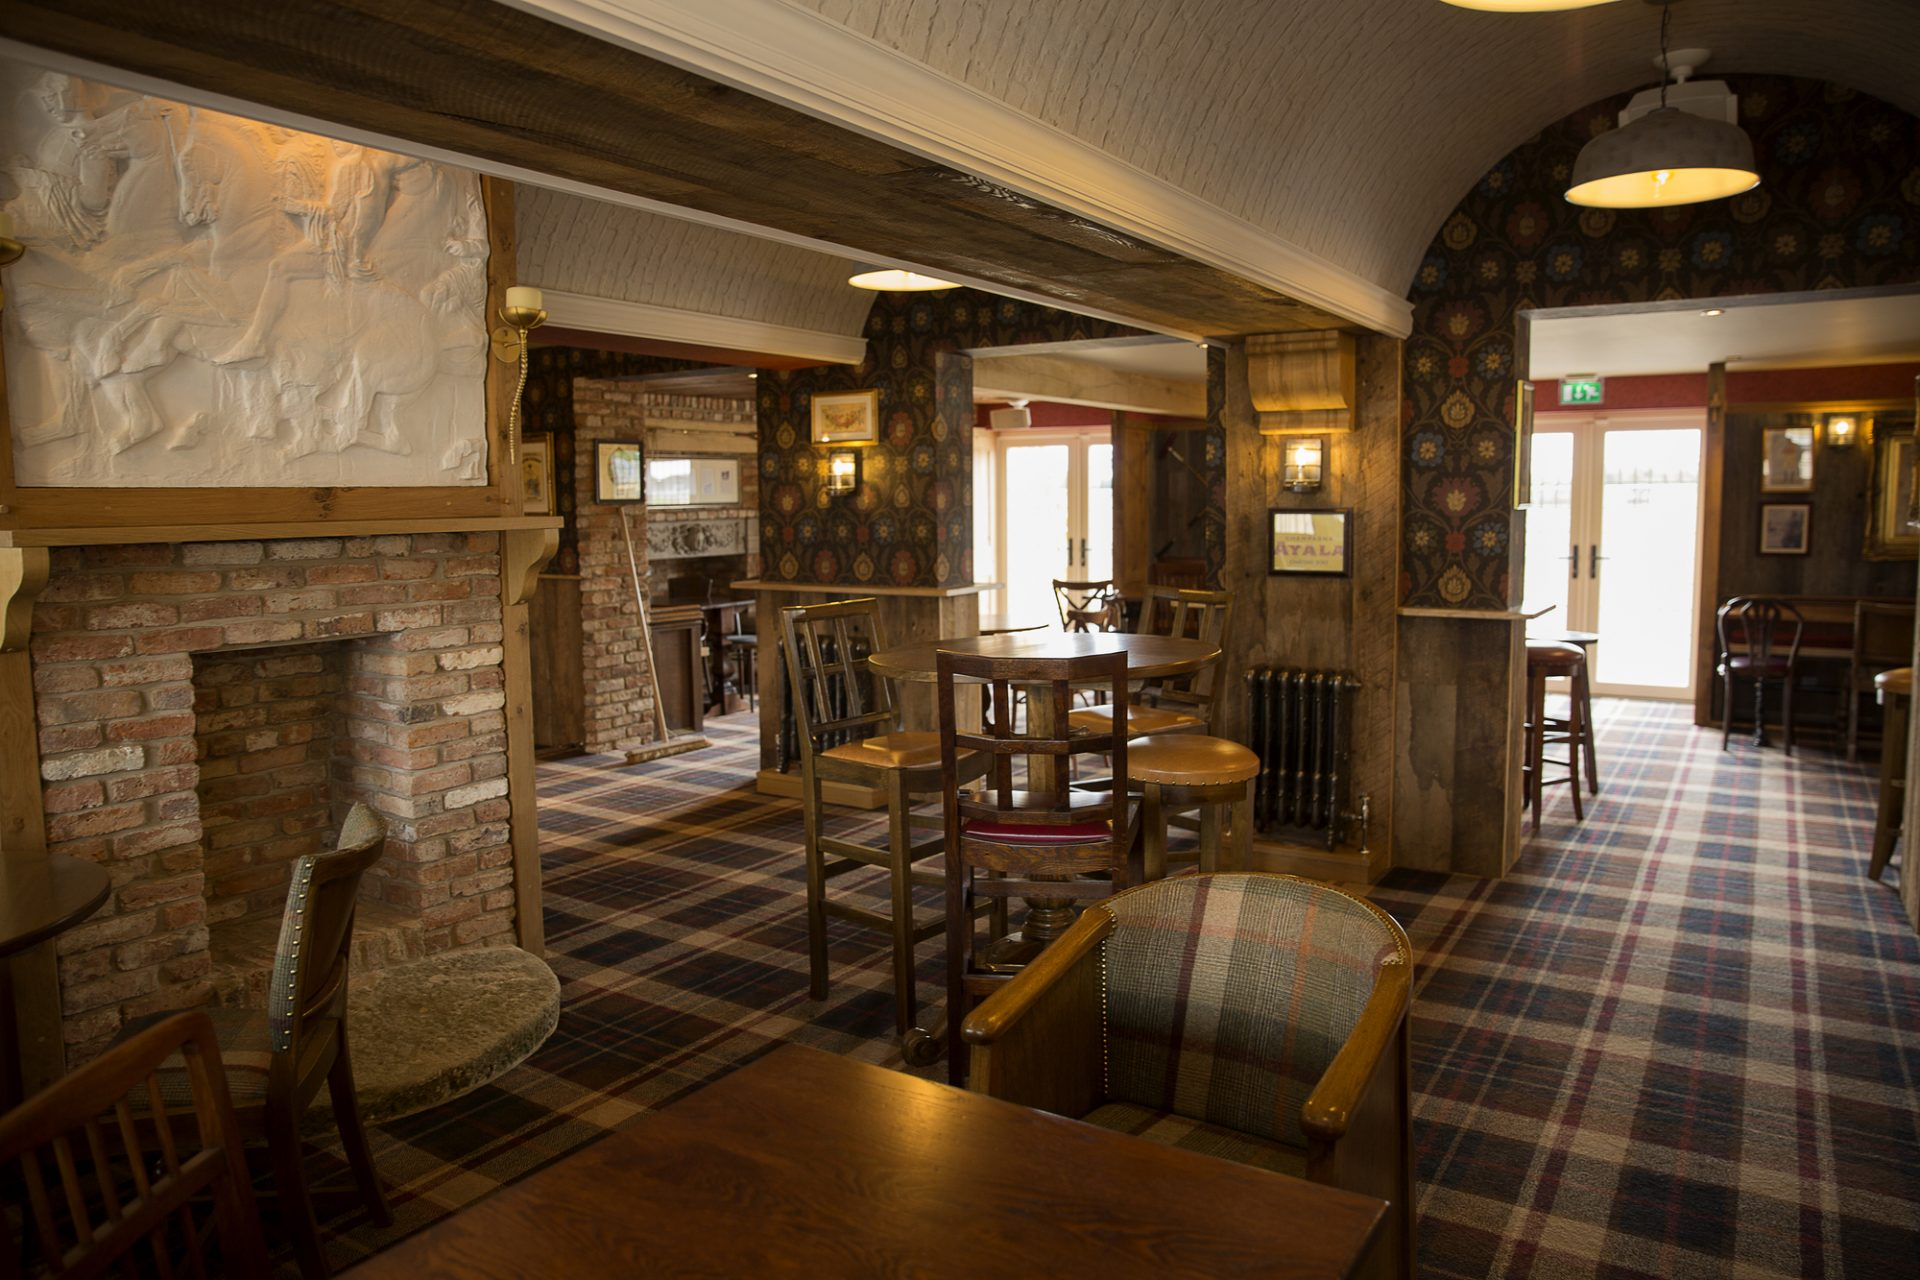 Millstone Hare ideal venue for corporate events